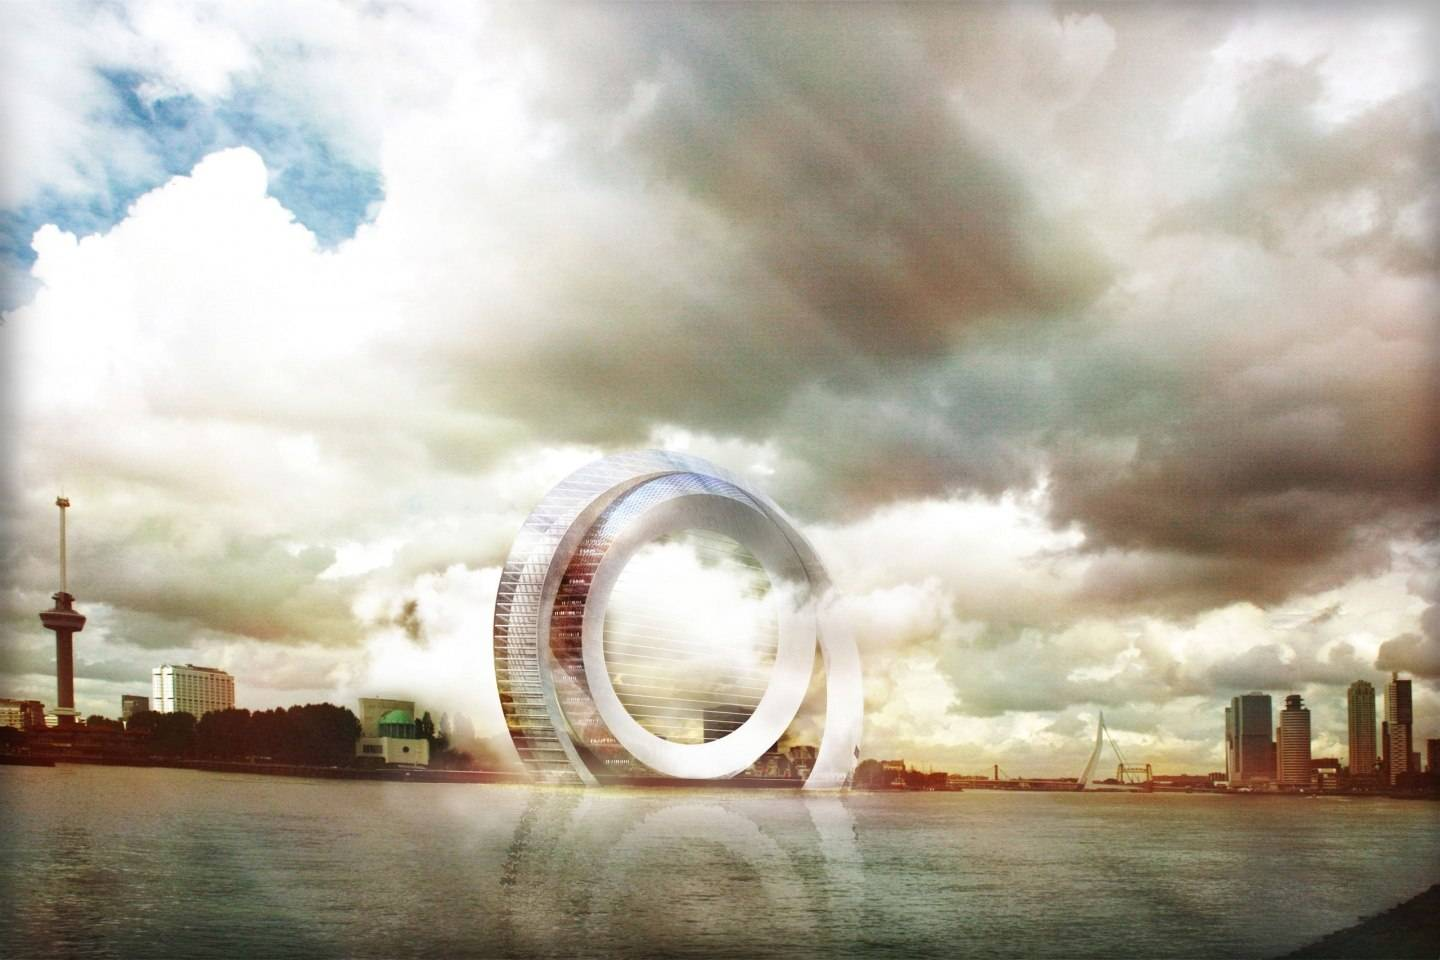 Dutch Windwheel